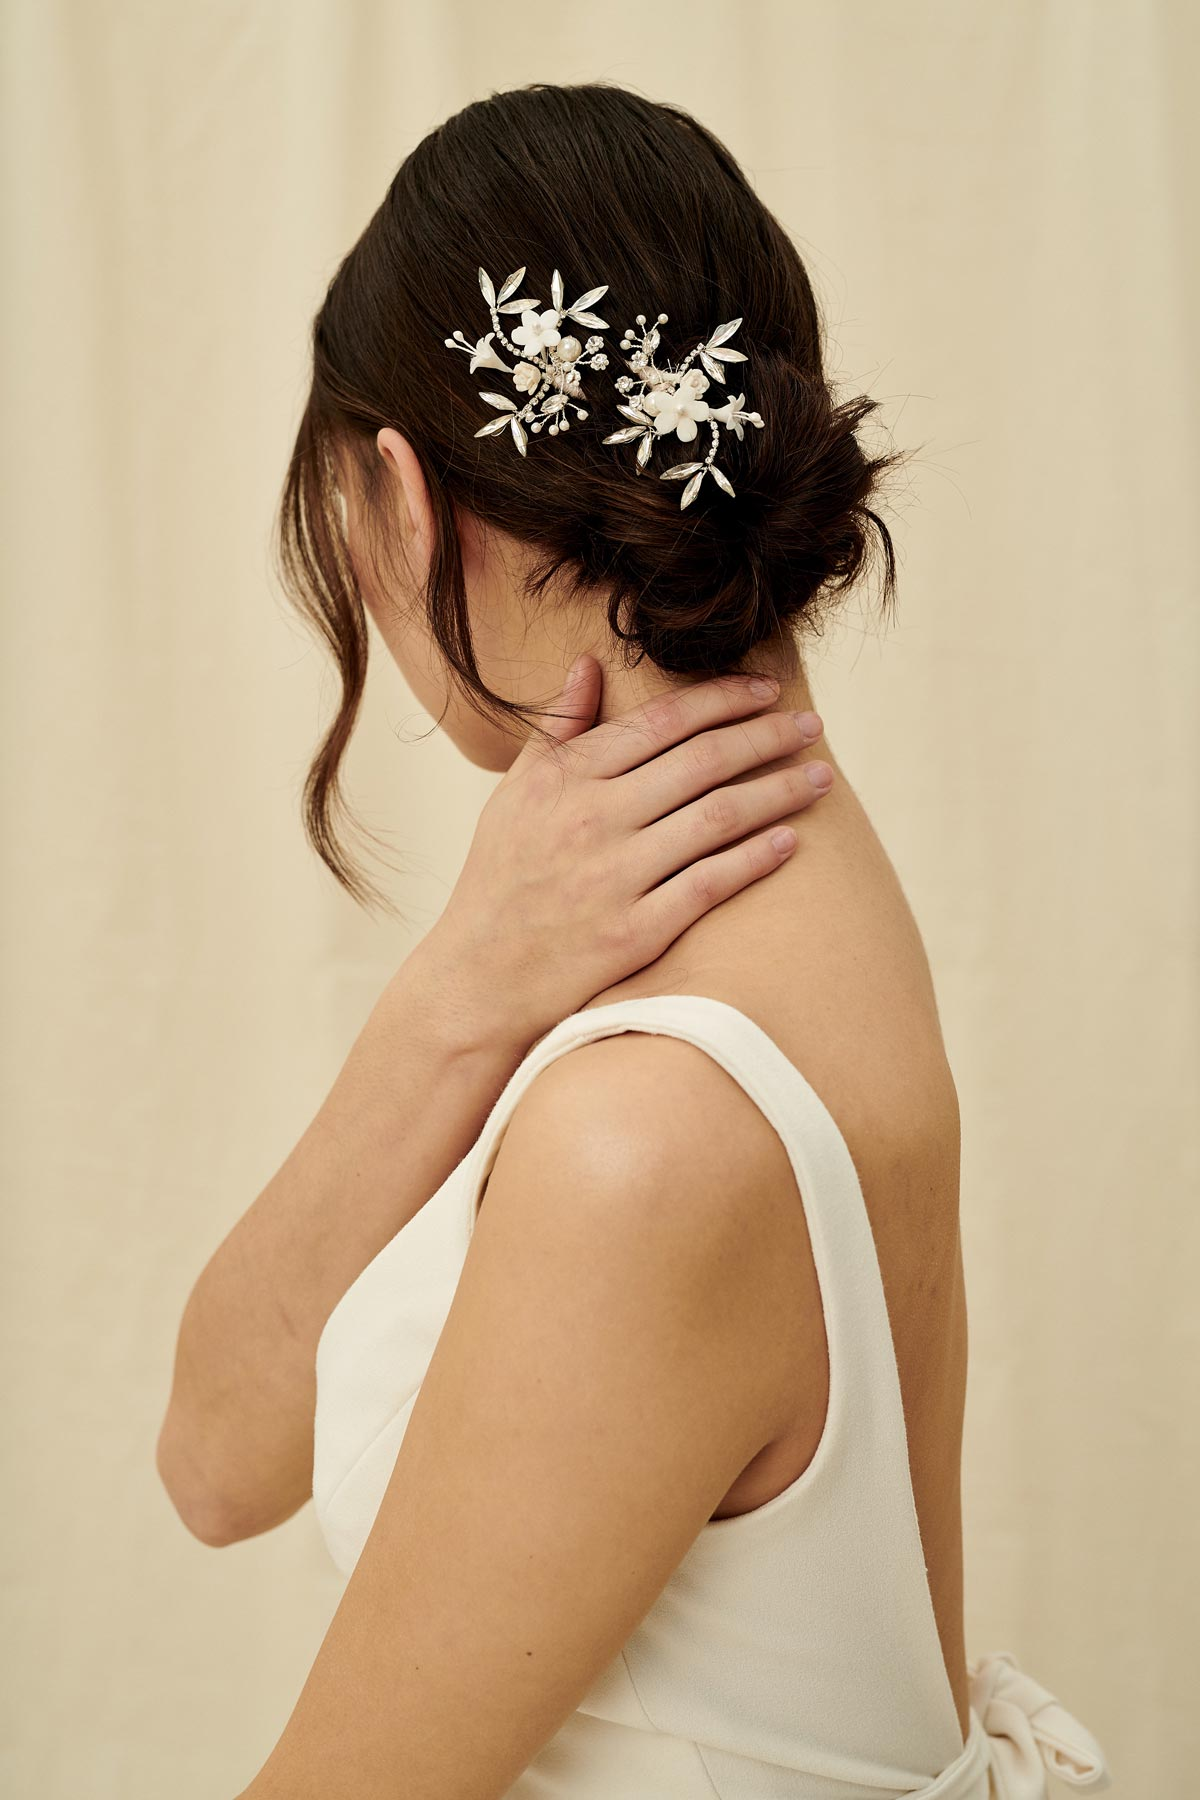 A silvery hairpin set with porcelain flowers, pearl beading, and glittery marquise crystals